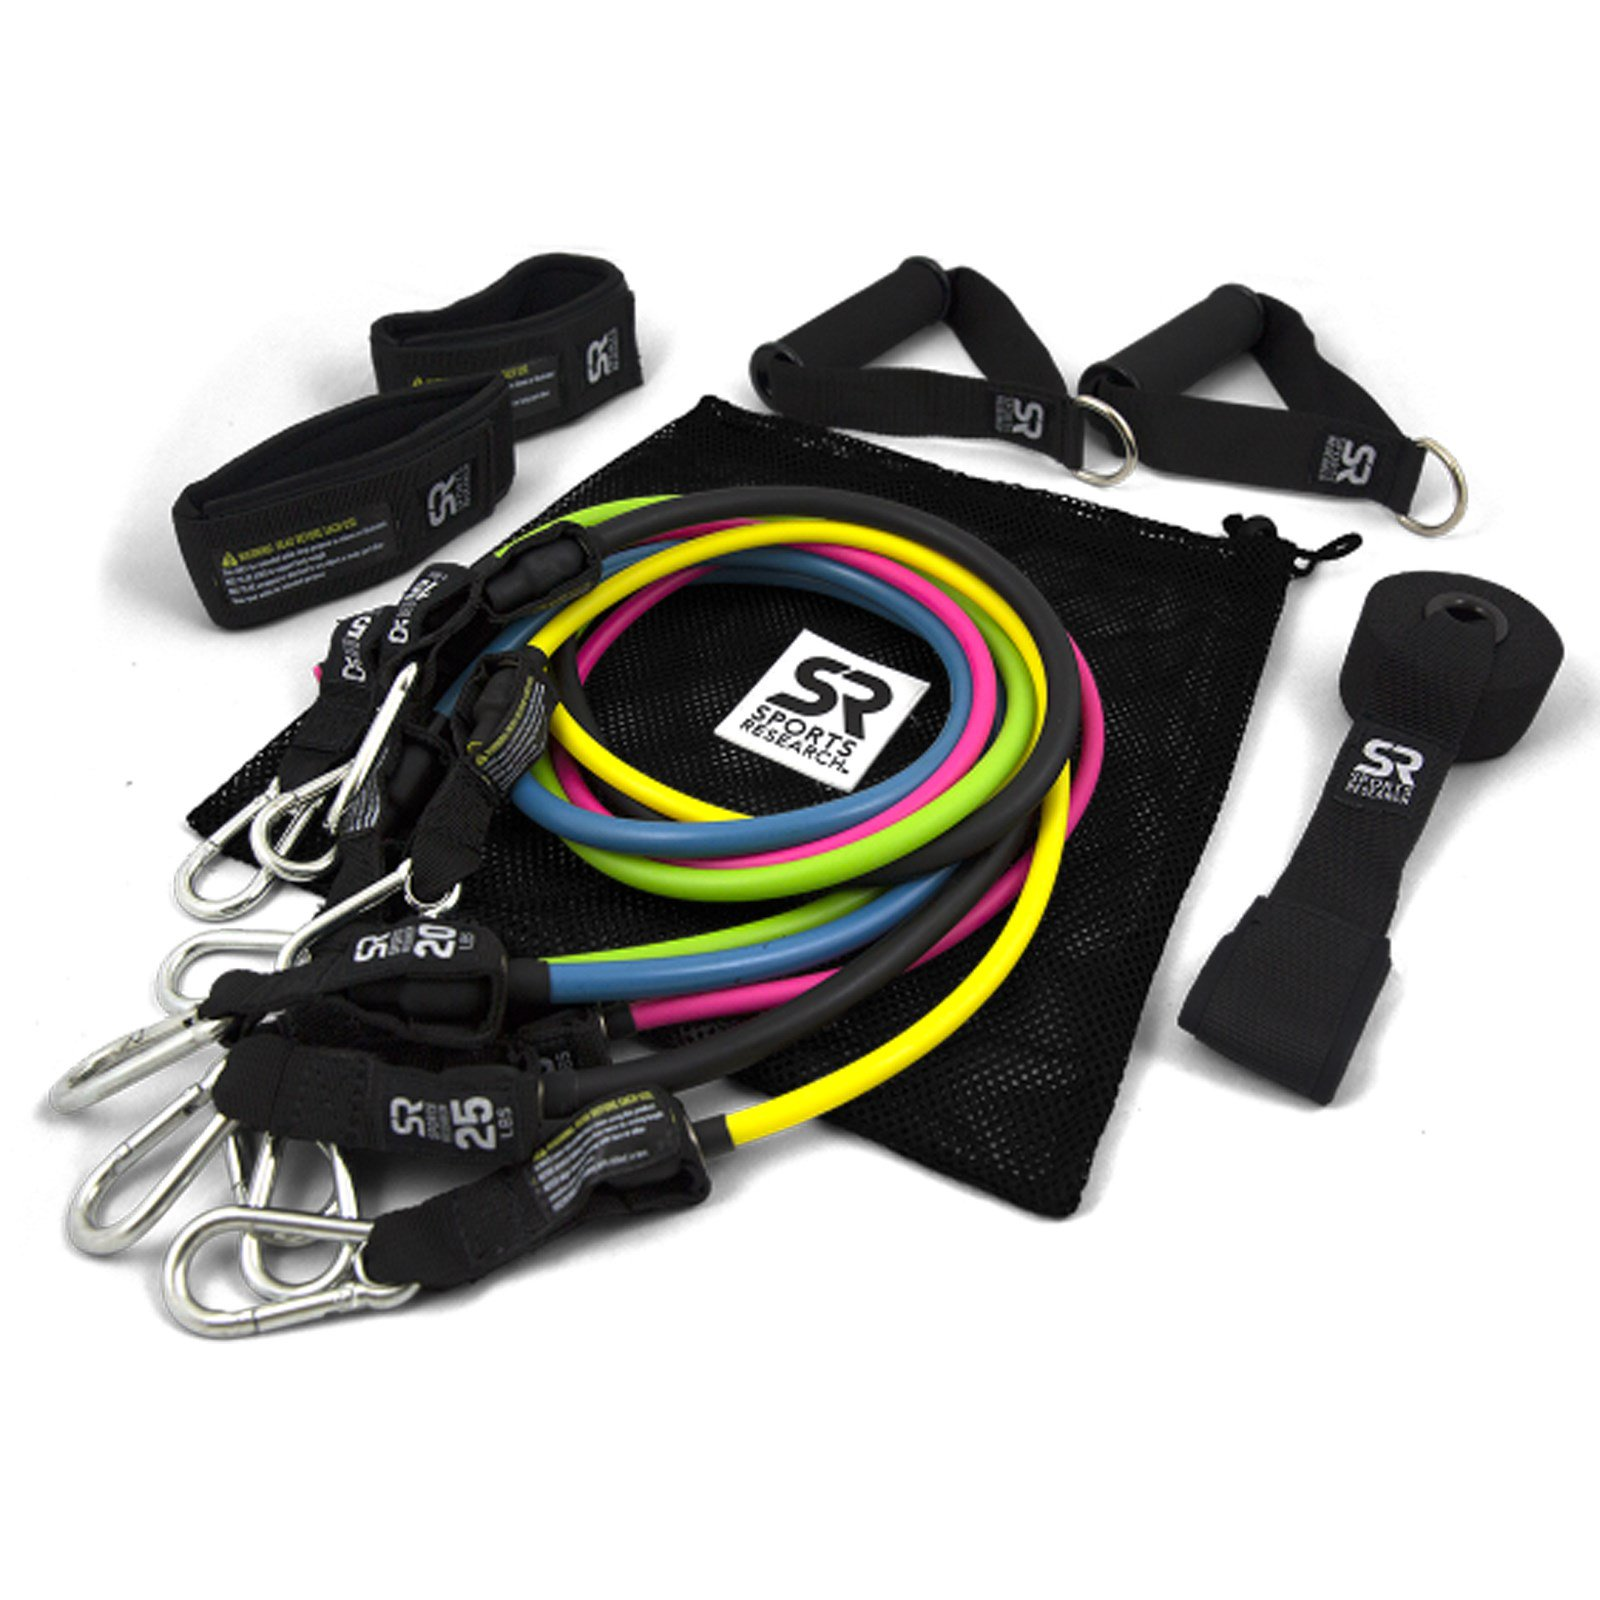 Exercise Bands Names: Sports Research, Performance Resistance Bands, 5 Bands